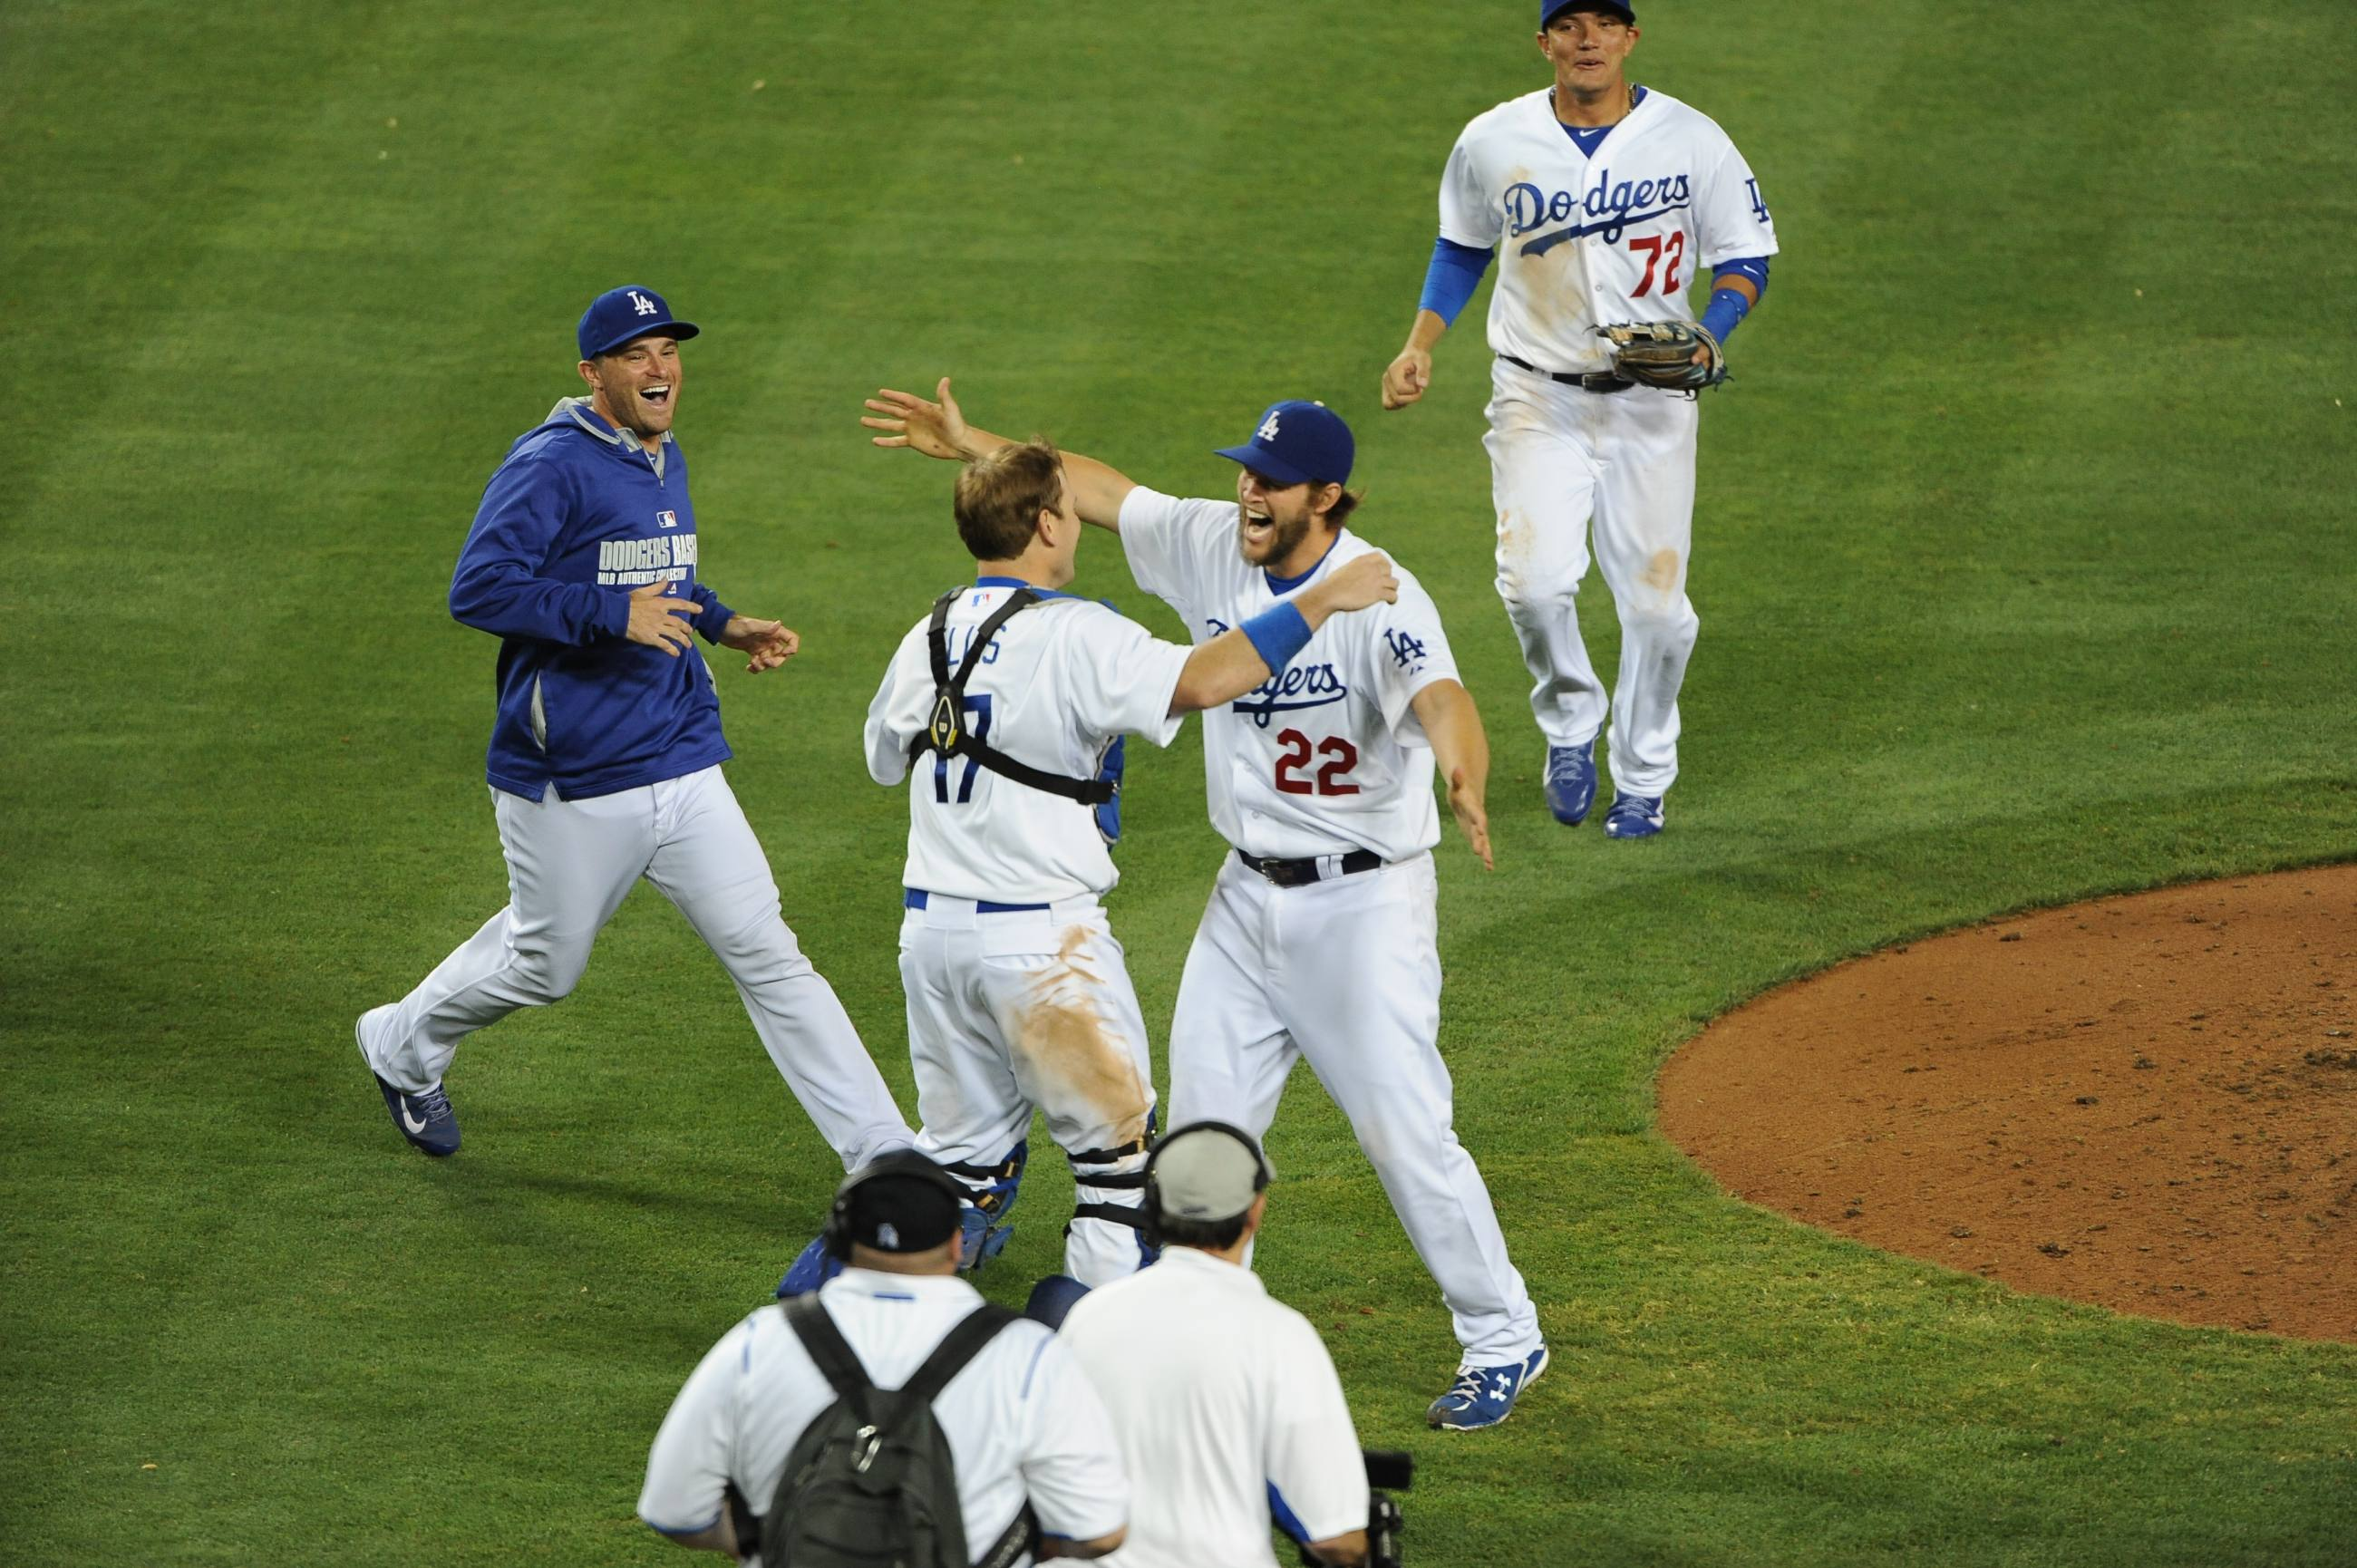 The Dodgers celebrate Clayton Kershaw's no-hitter at Dodger Stadium on June 18, 2014